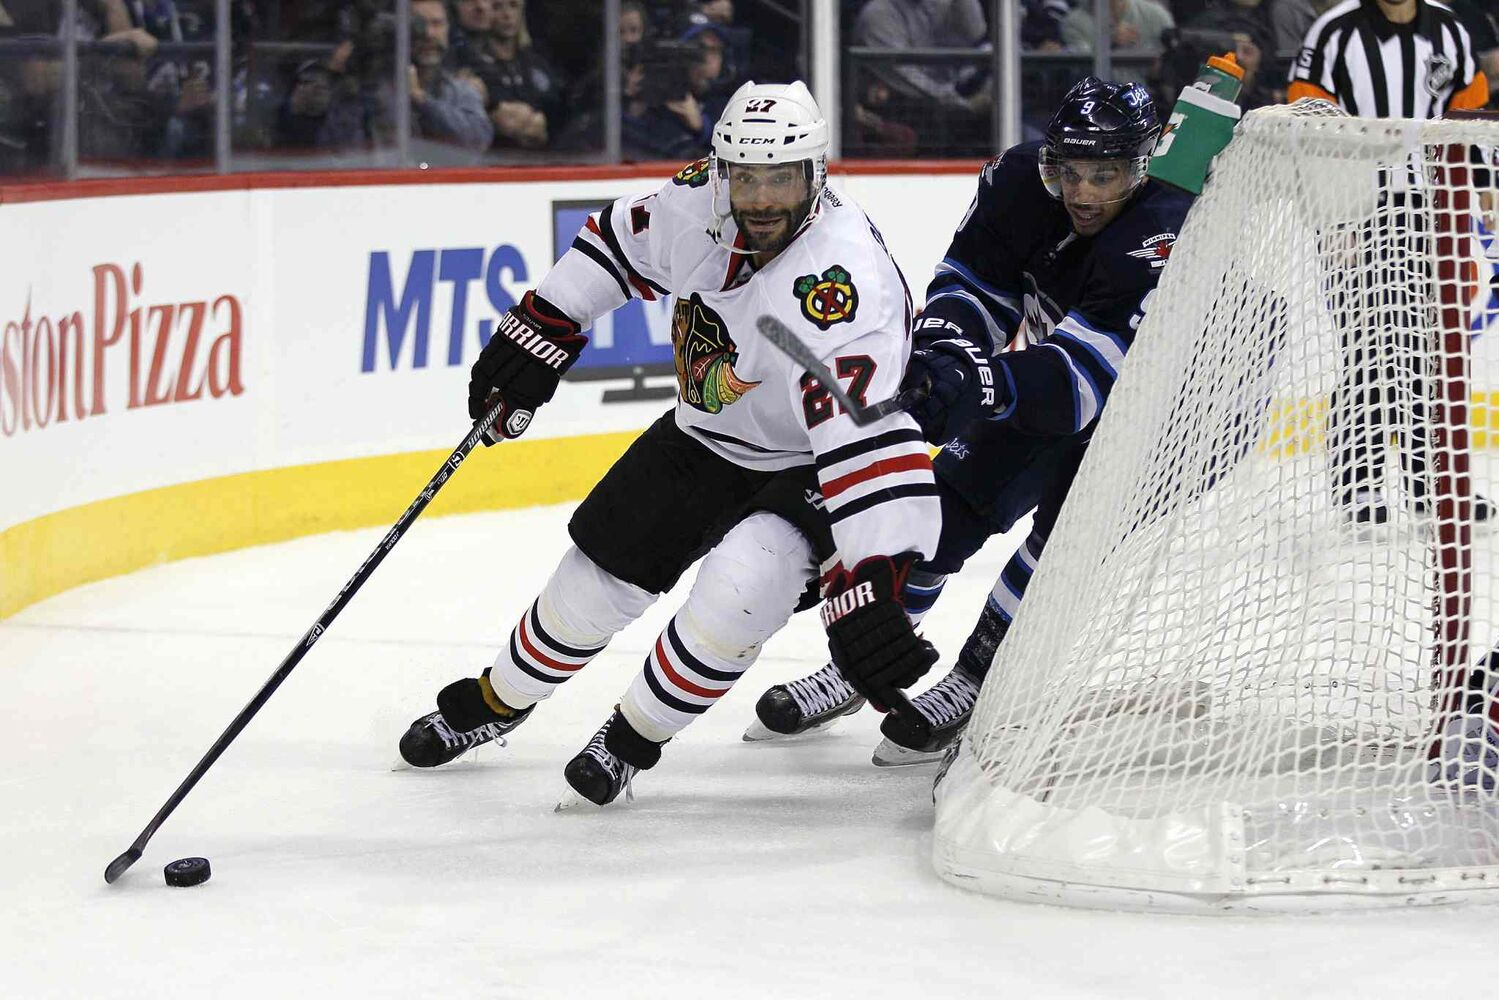 Winnipeg Jets forward Evander Kane (9) chases Chicago Blackhawks defenceman Johnny Oduya (27) behind his net during the second period.